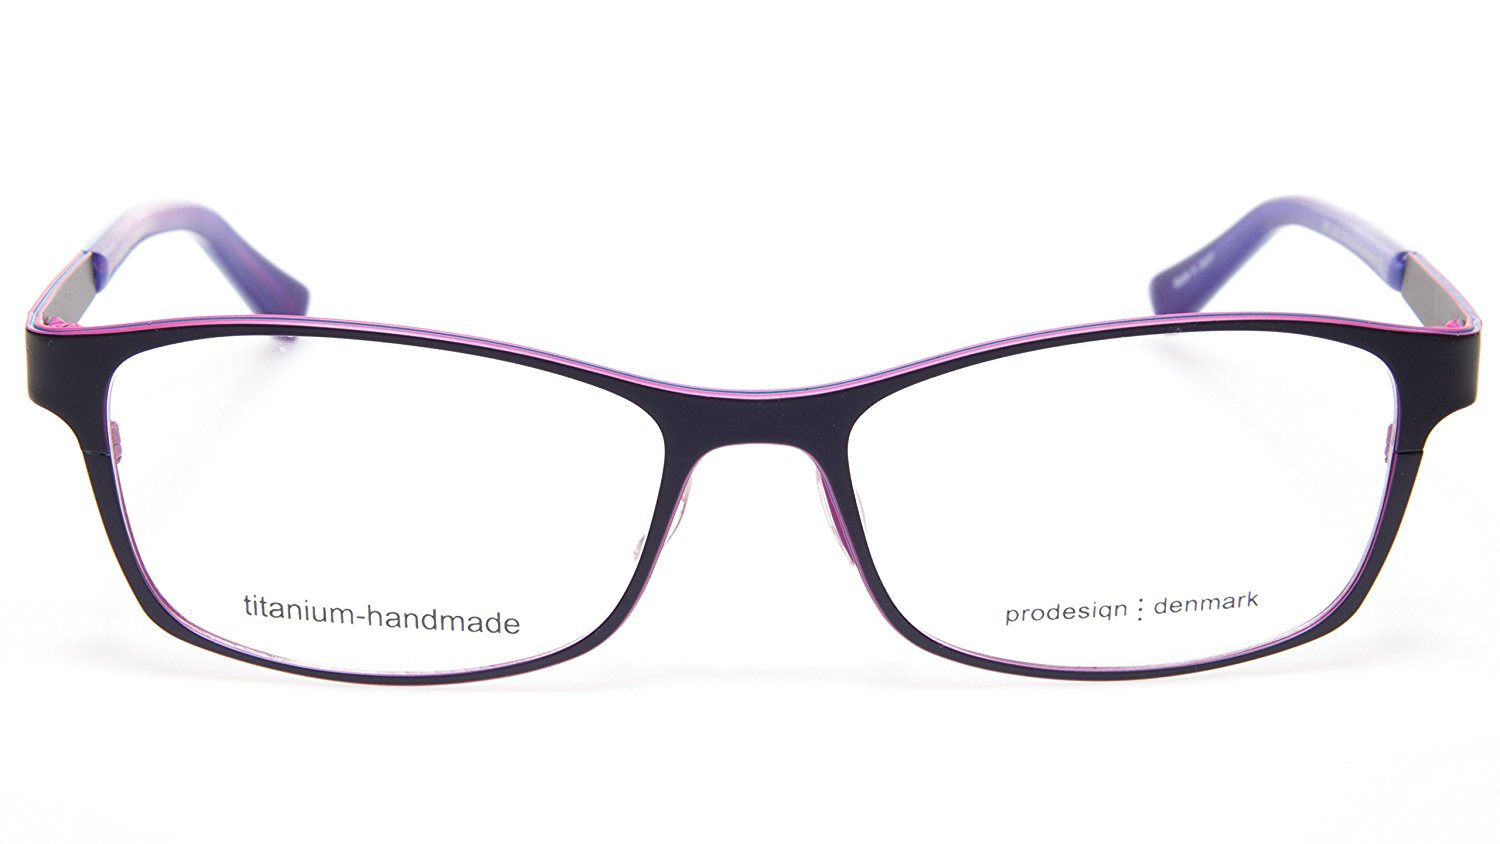 e2b98acb13e Get Quotations · NEW PRODESIGN DENMARK 1407 c.3531 VIOLET EYEGLASSES FRAME  54-16-140 B34mm